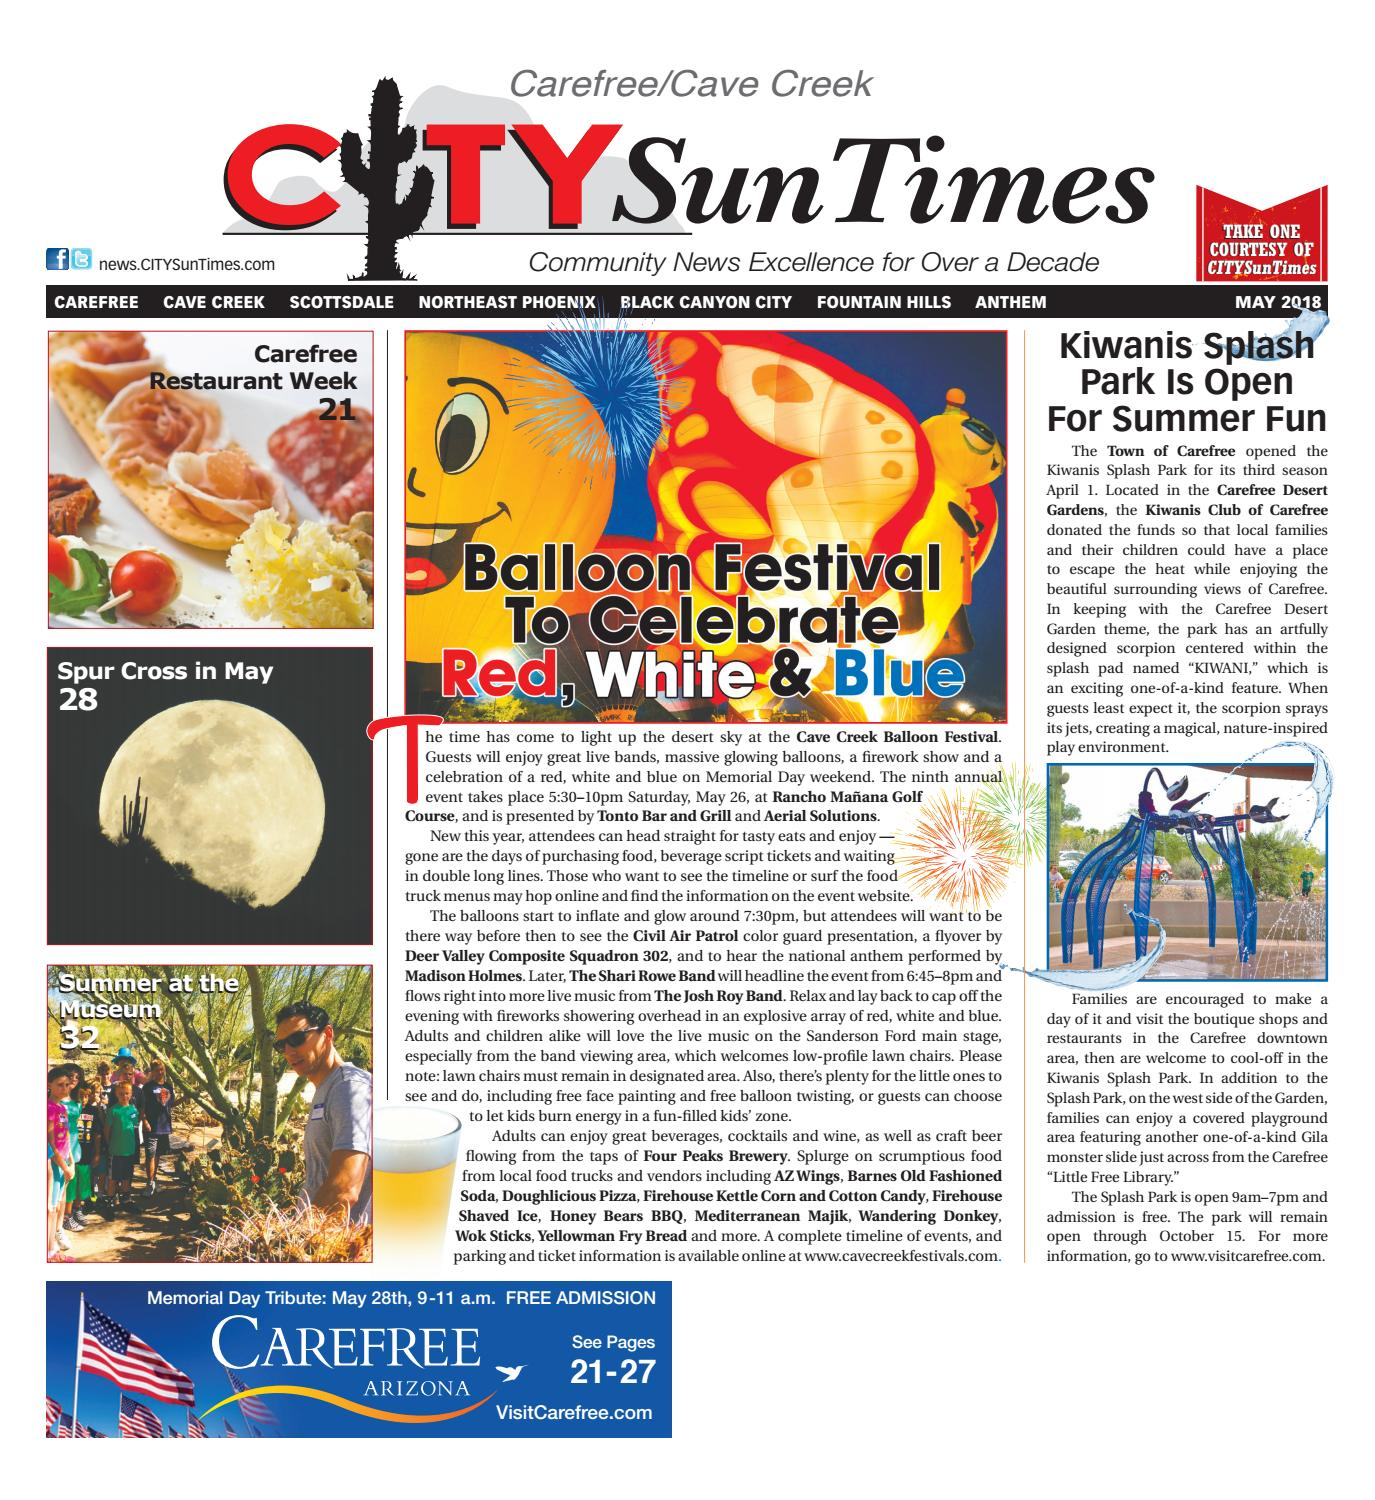 33505a83ae Carefree Cave Creek CITYSunTimes May 2018 Issue by Jenifer Lee - issuu